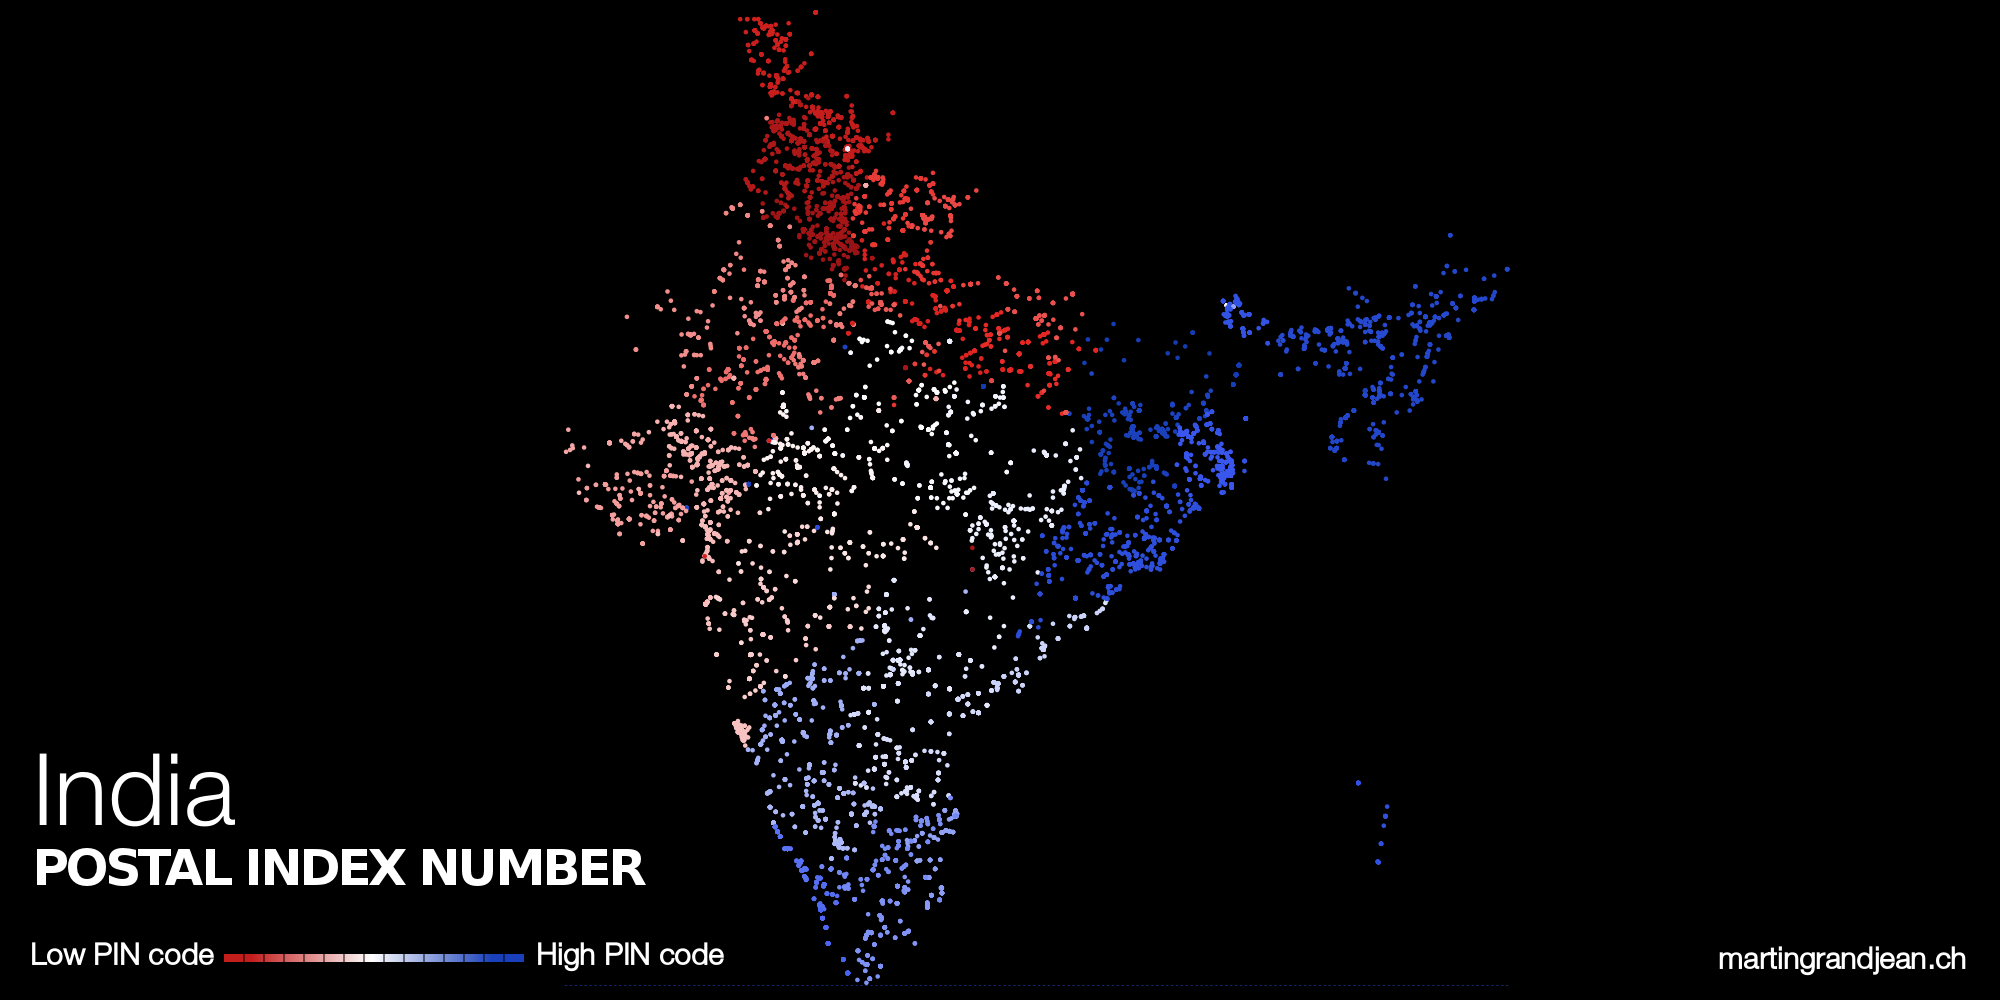 India PIN codes map